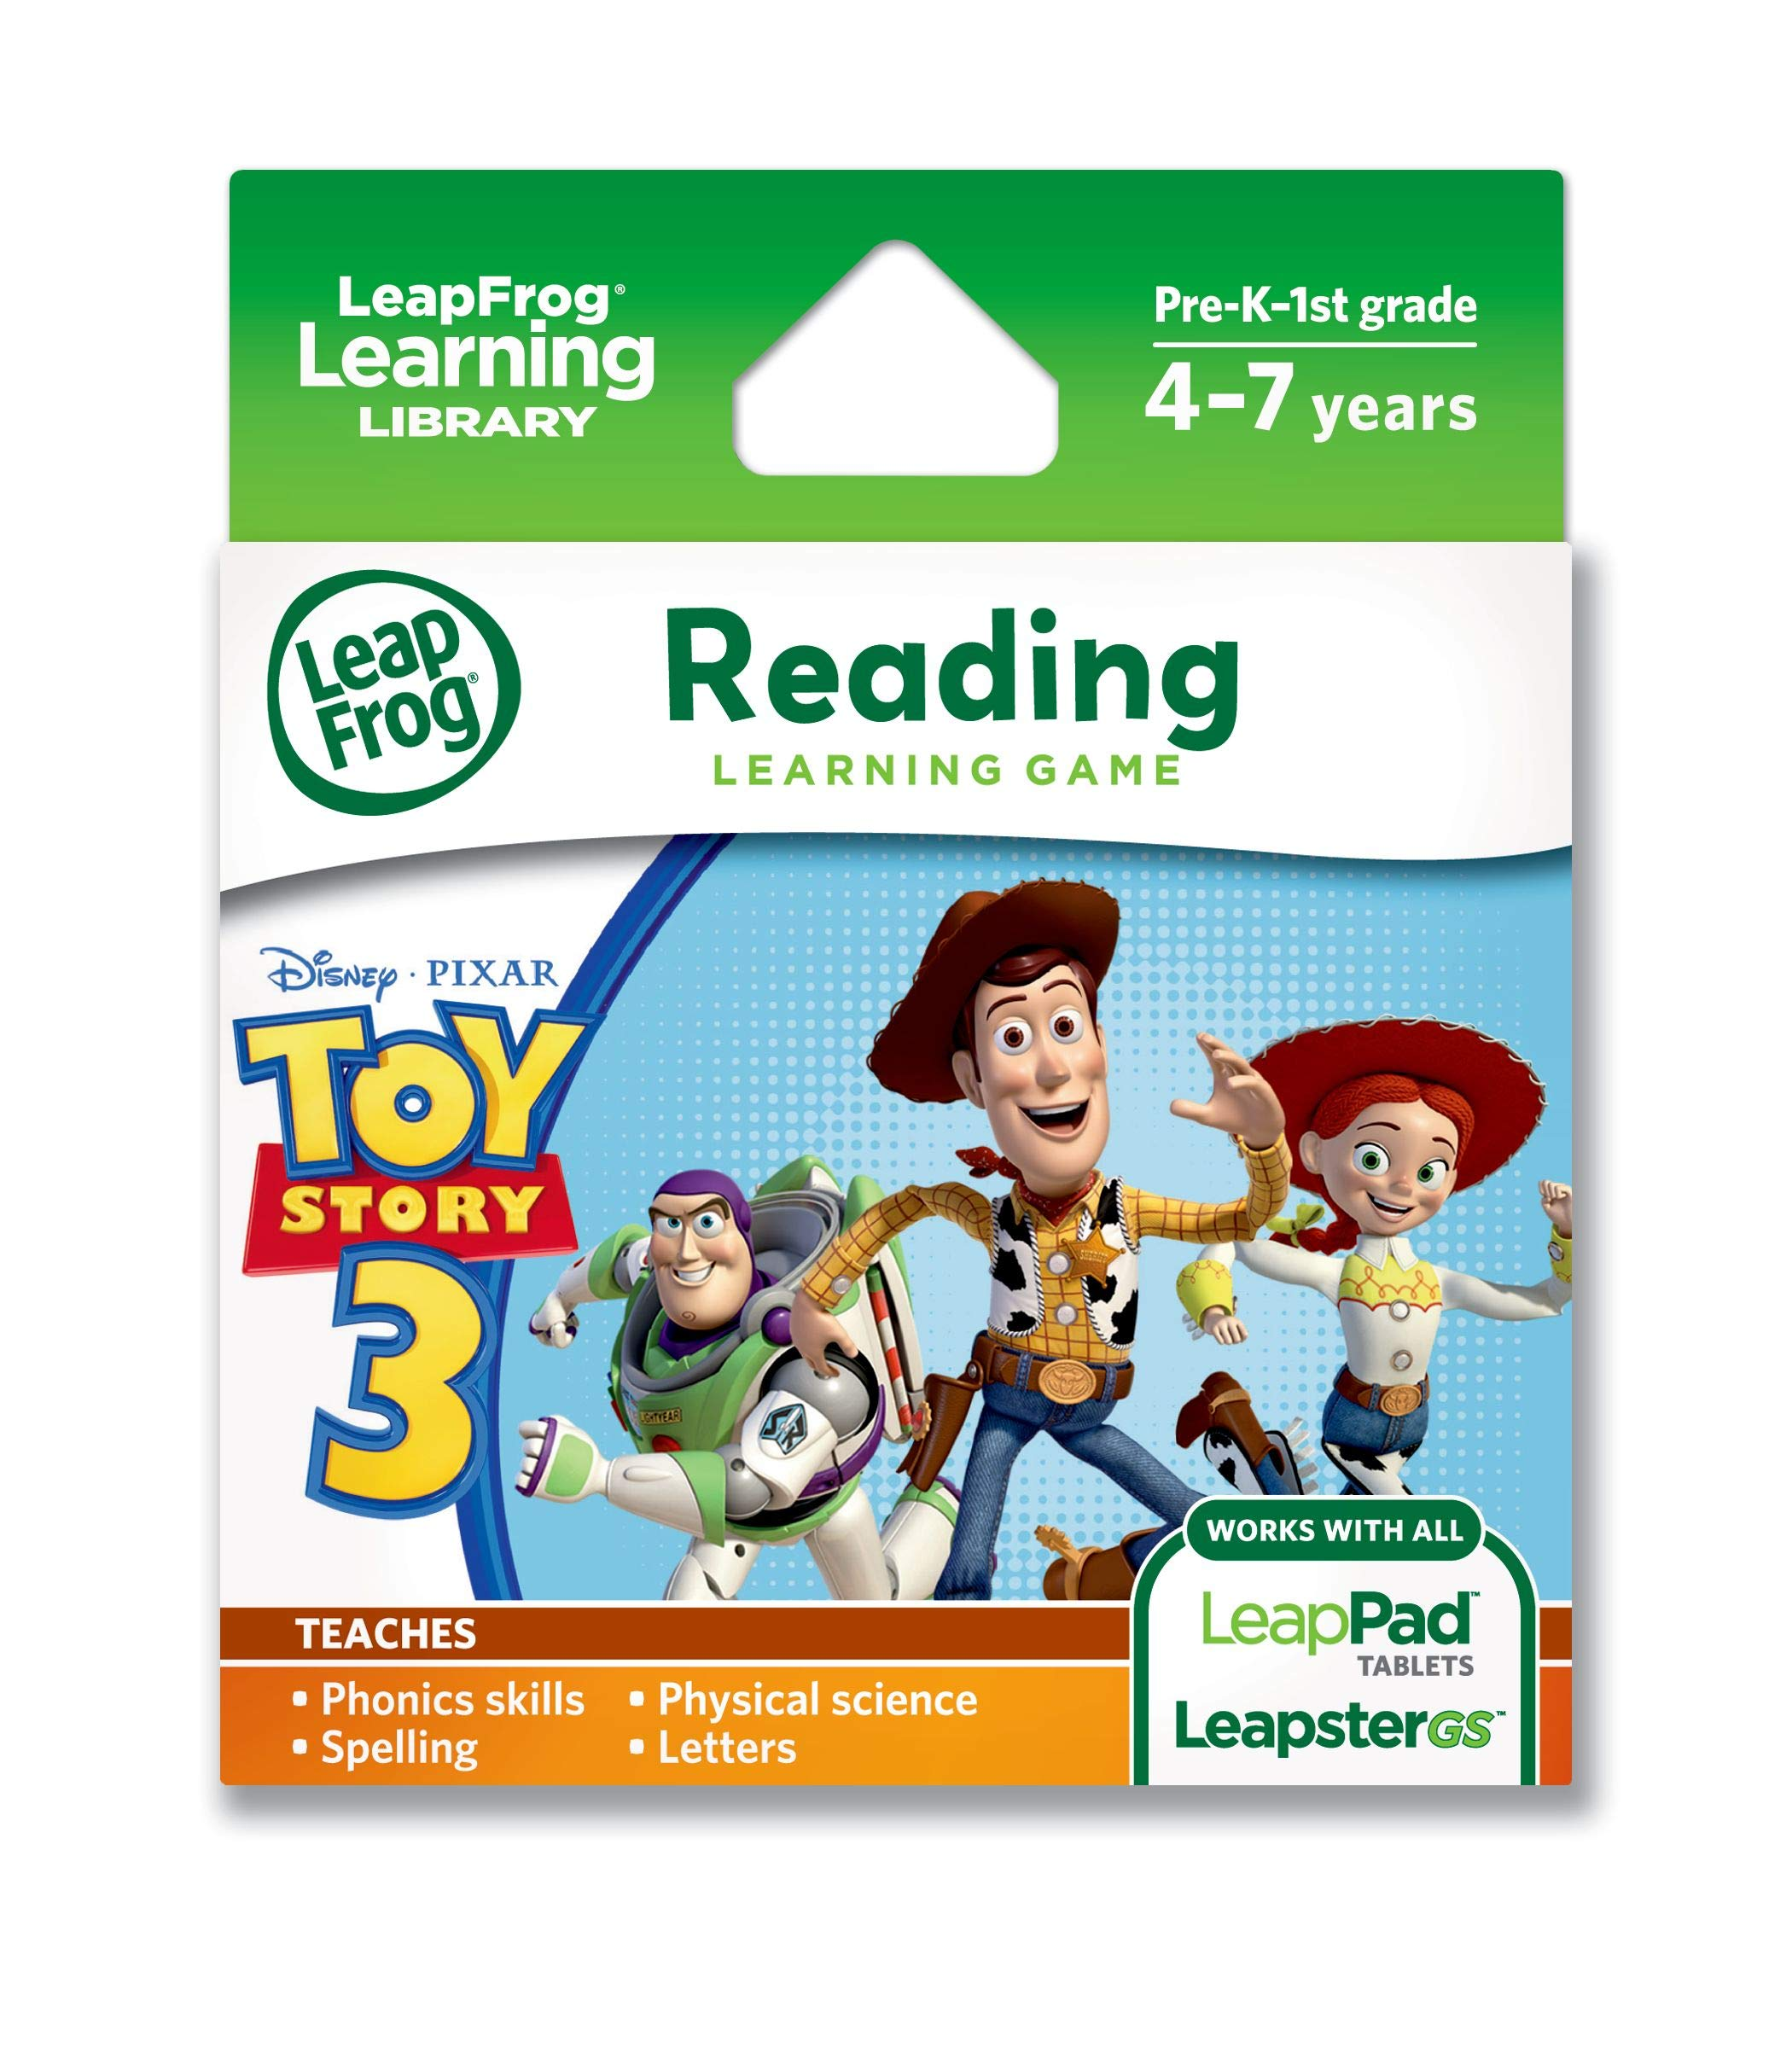 LeapFrog Disney-Pixar Toy Story 3 Learning Game (works with LeapPad Tablets & LeapsterGS) by LeapFrog